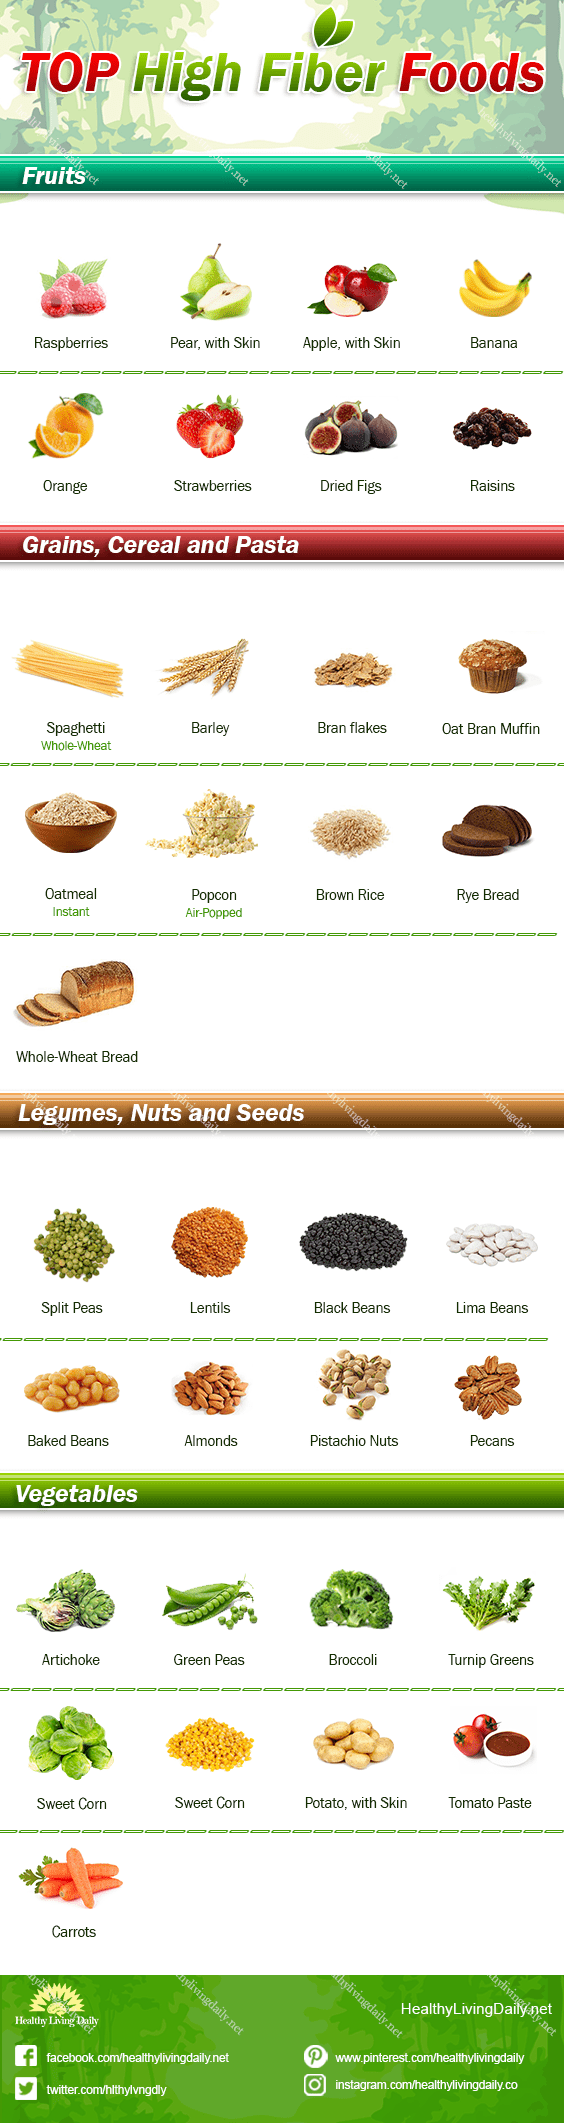 Infographic image for top high fiber foods